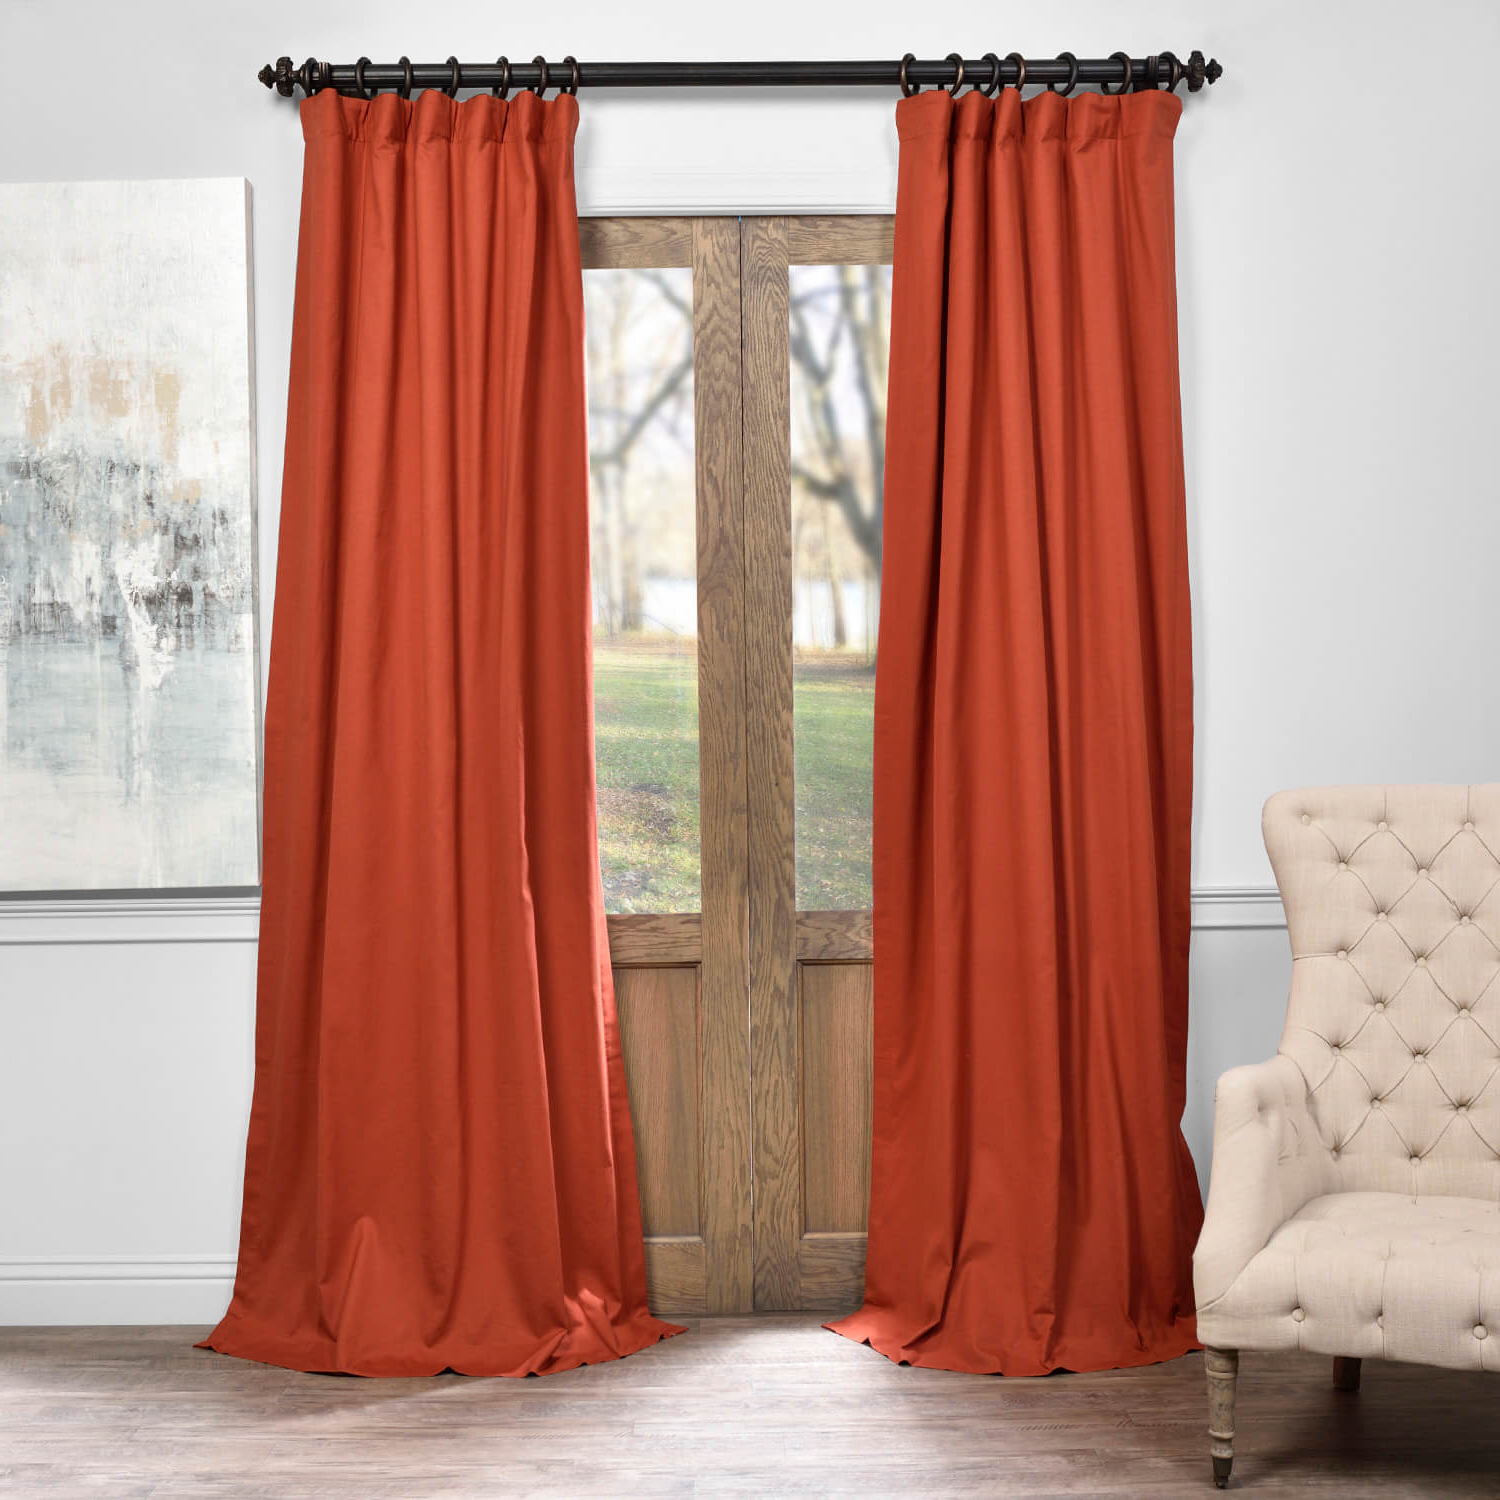 Most Recent Autumn Rust Solid Cotton Blackout Curtain Inside Signature Pinch Pleated Blackout Solid Velvet Curtain Panels (View 13 of 20)